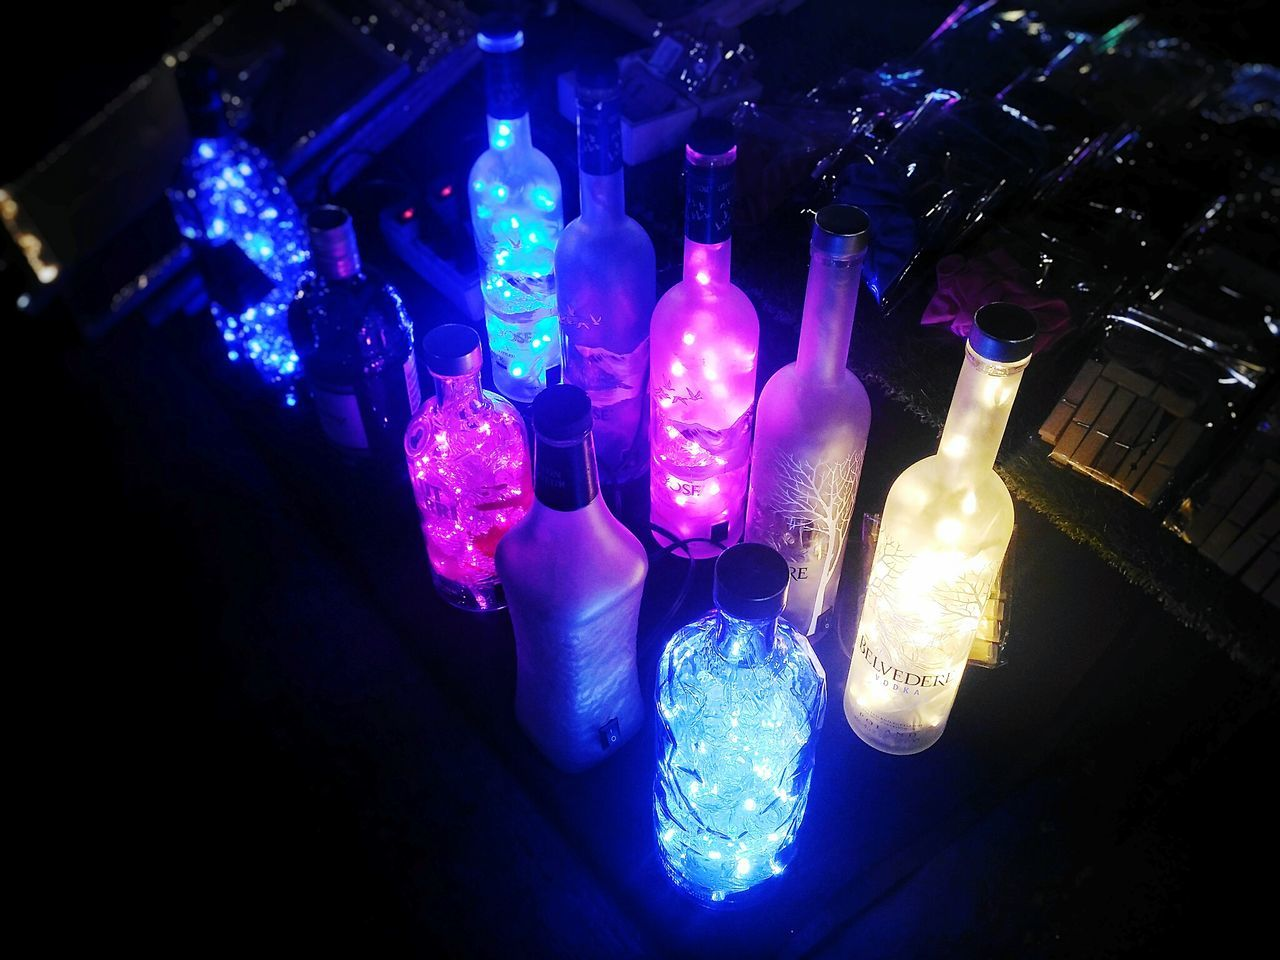 Light In The Darkness Bottles Of Wine Colorful Darkness And Light Rainbow Room Lights Decorated Room Light Lamplight Decorative Lights Sleeper Sleep Time Time To Relax Relaxedand Happy